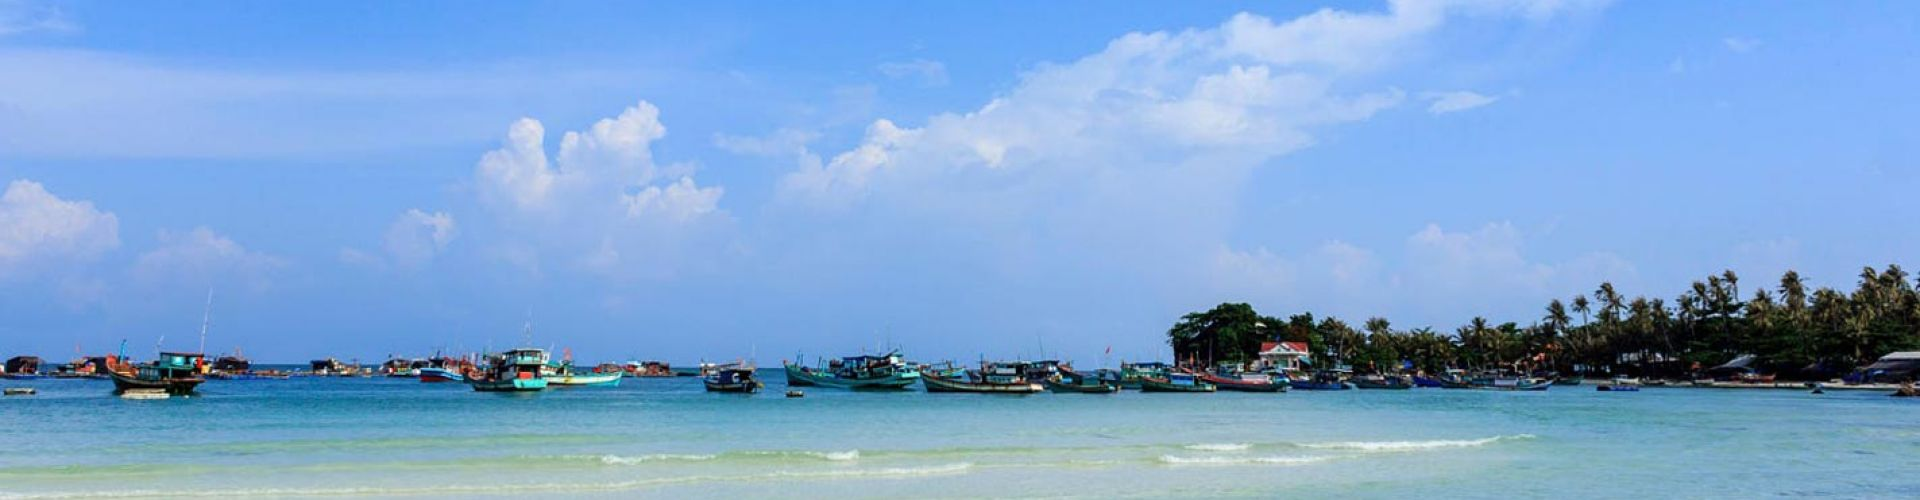 Destinations in Kien Giang